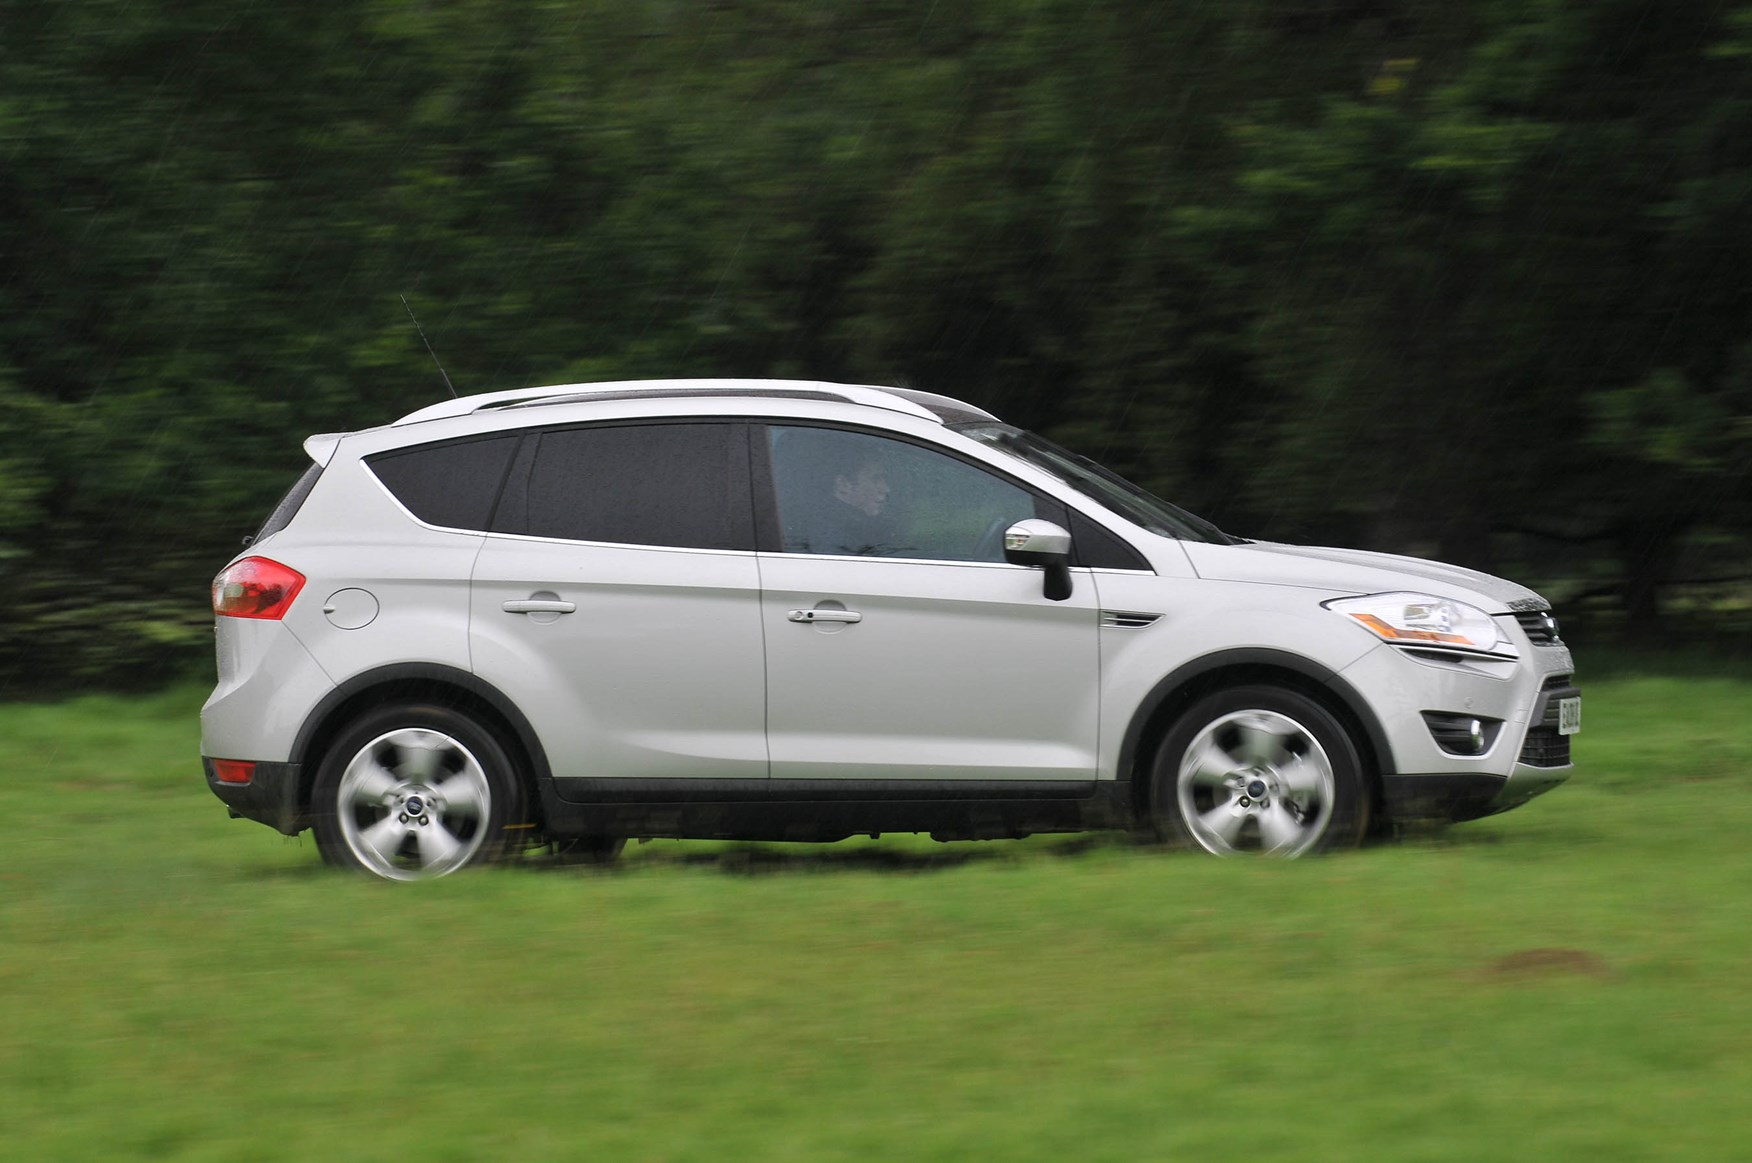 Car Ford Kuga: reviews of owners, specifications and features 18